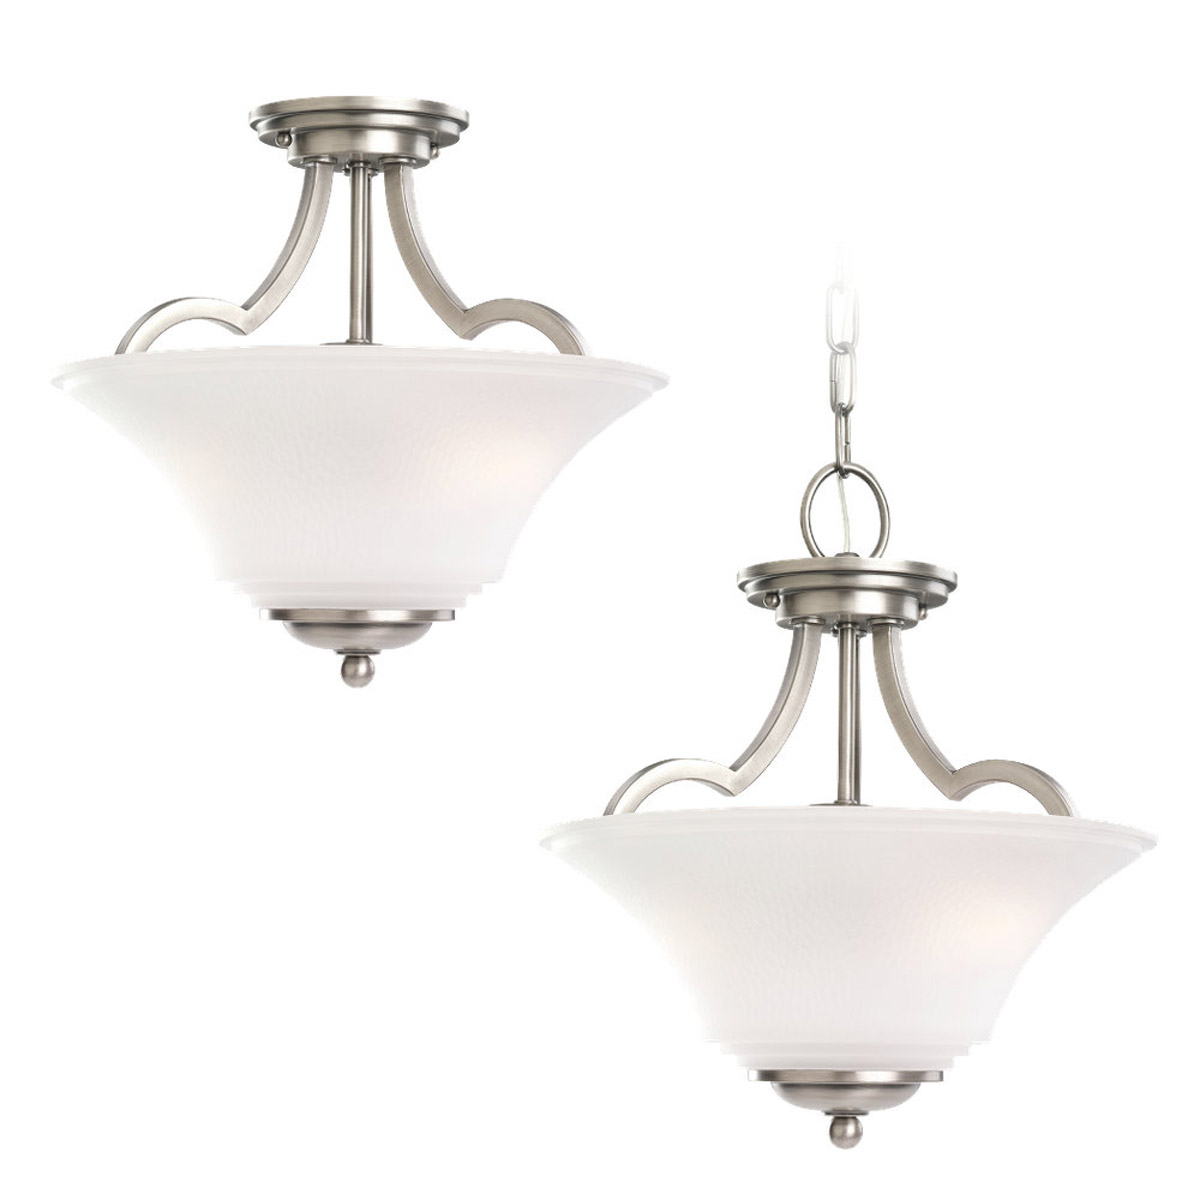 Sea Gull 77375-965 Somerton 2 Light 13 inch Antique Brushed Nickel Semi-Flush Mount Ceiling Light in Satin Etched Glass, Standard photo